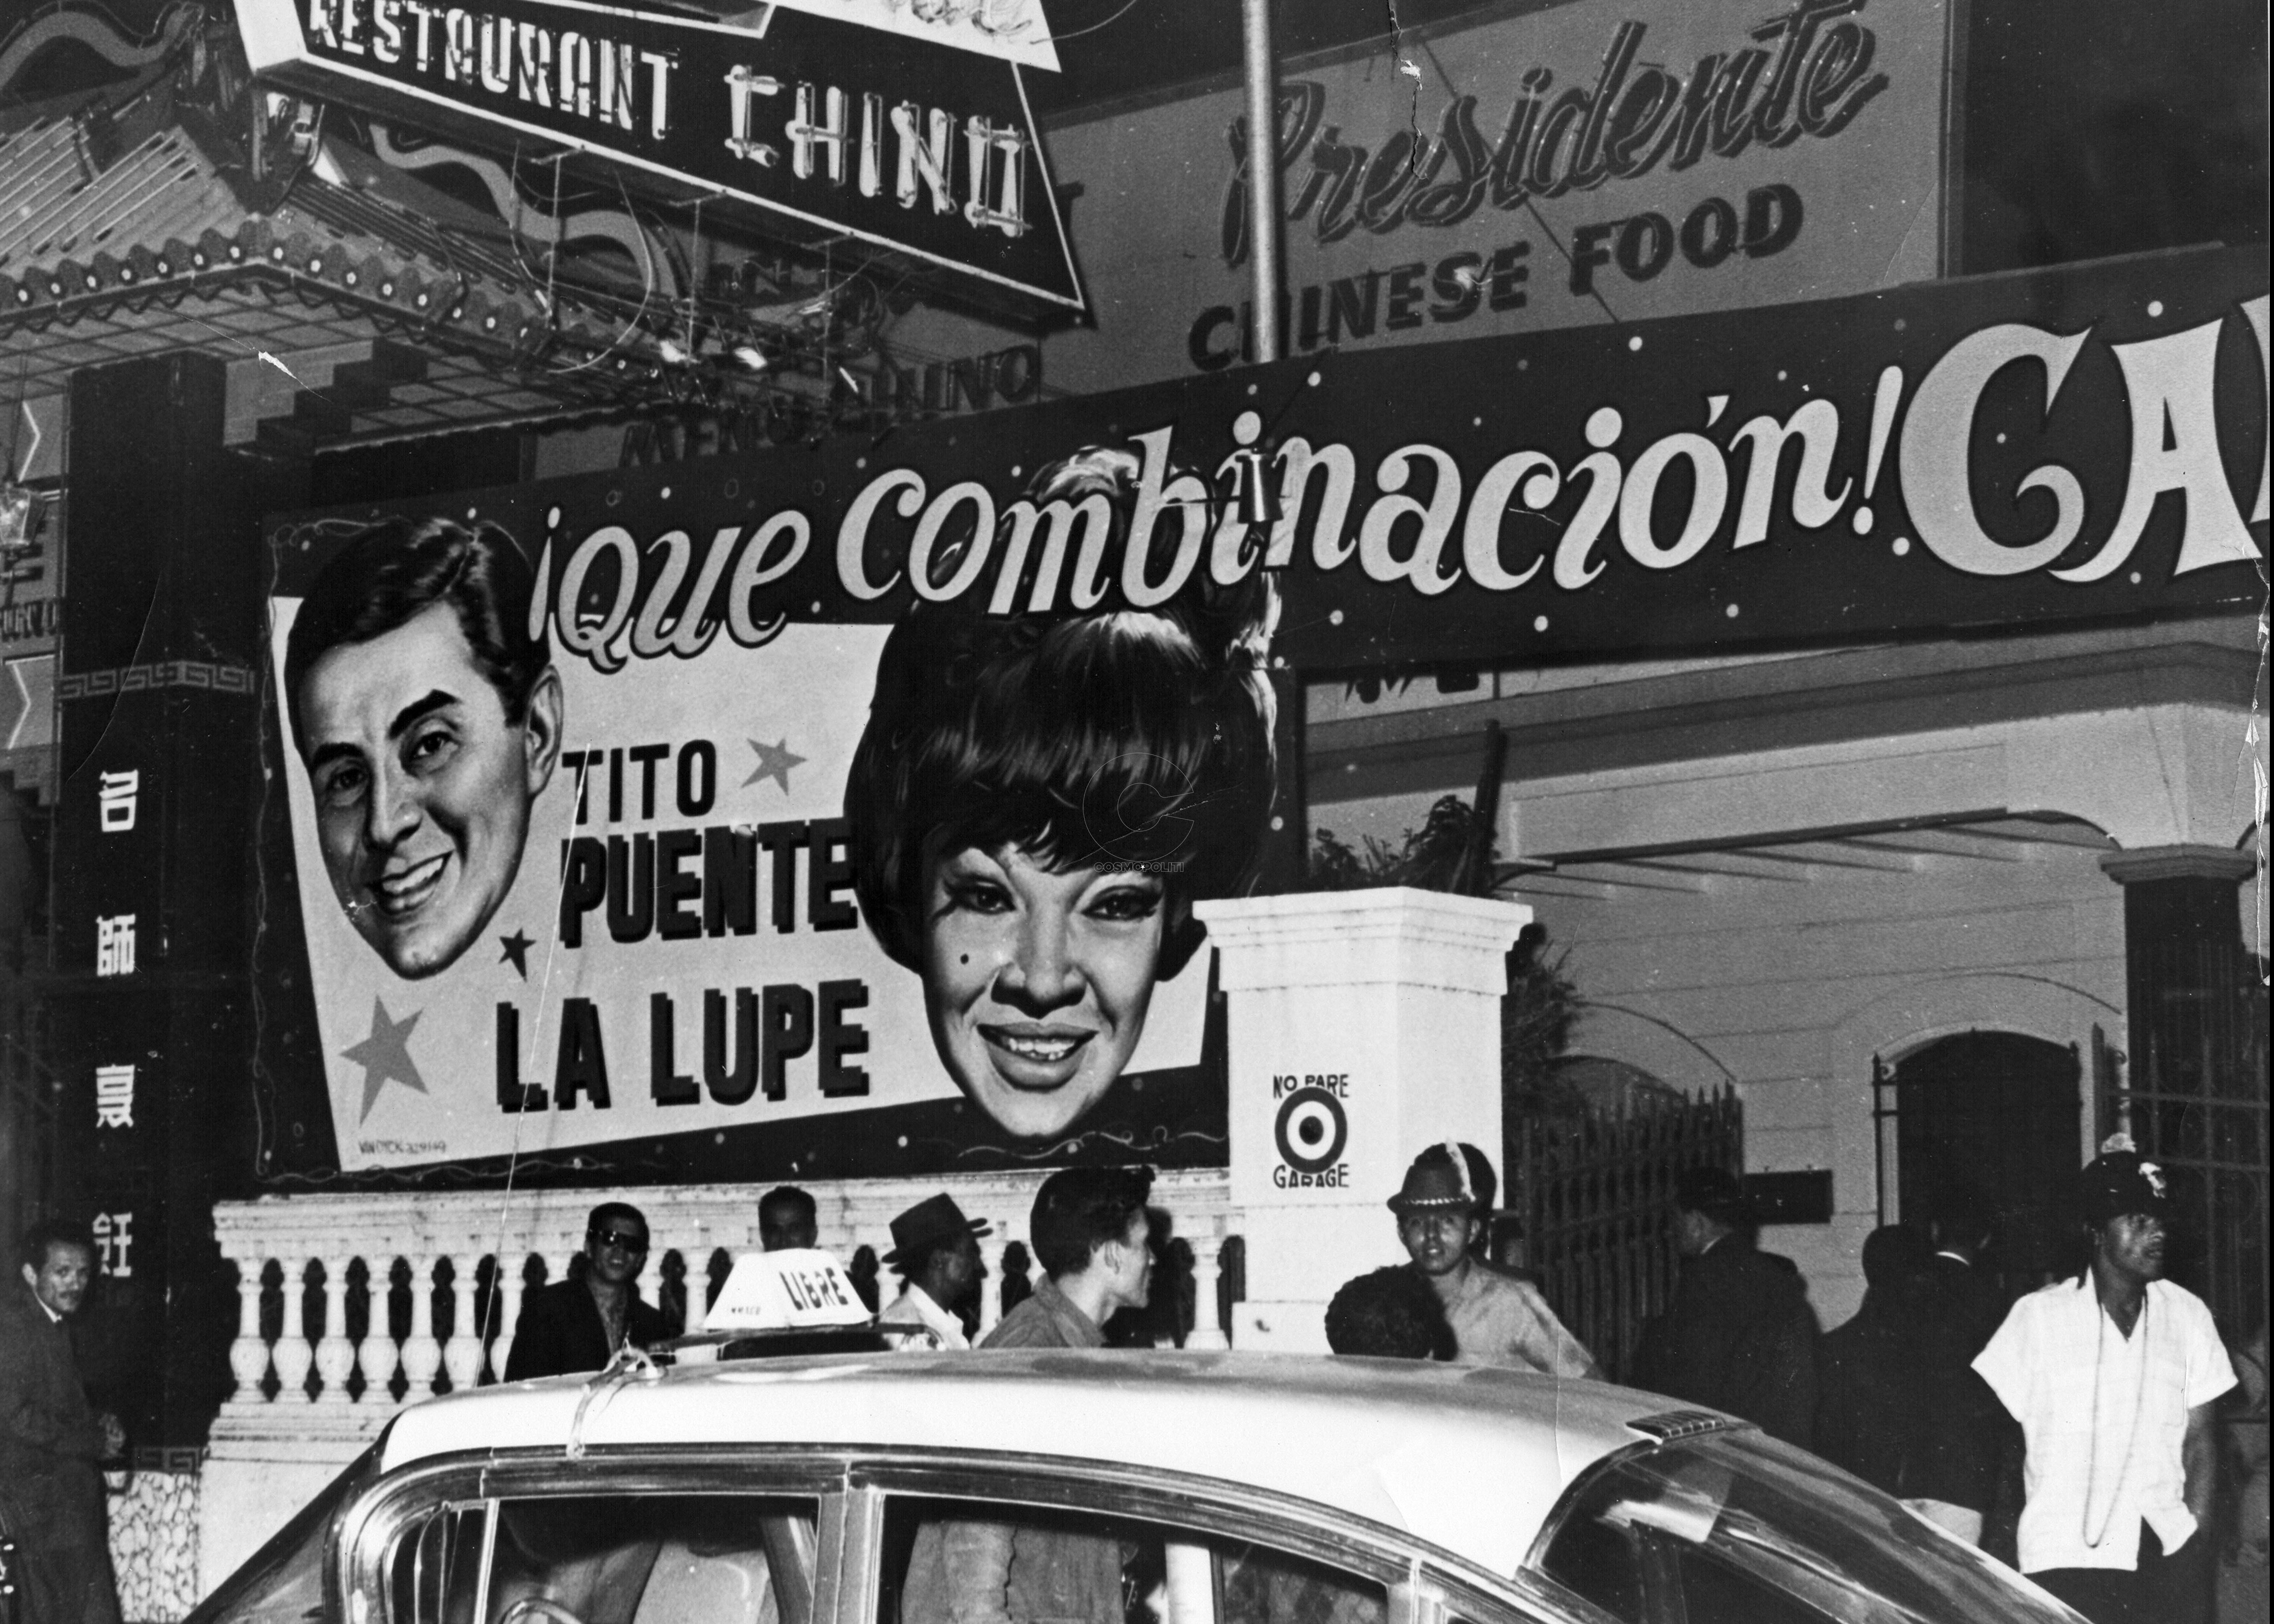 11._Sign-_-Tito_Puente_and_La_Lupe_Great_Combination-